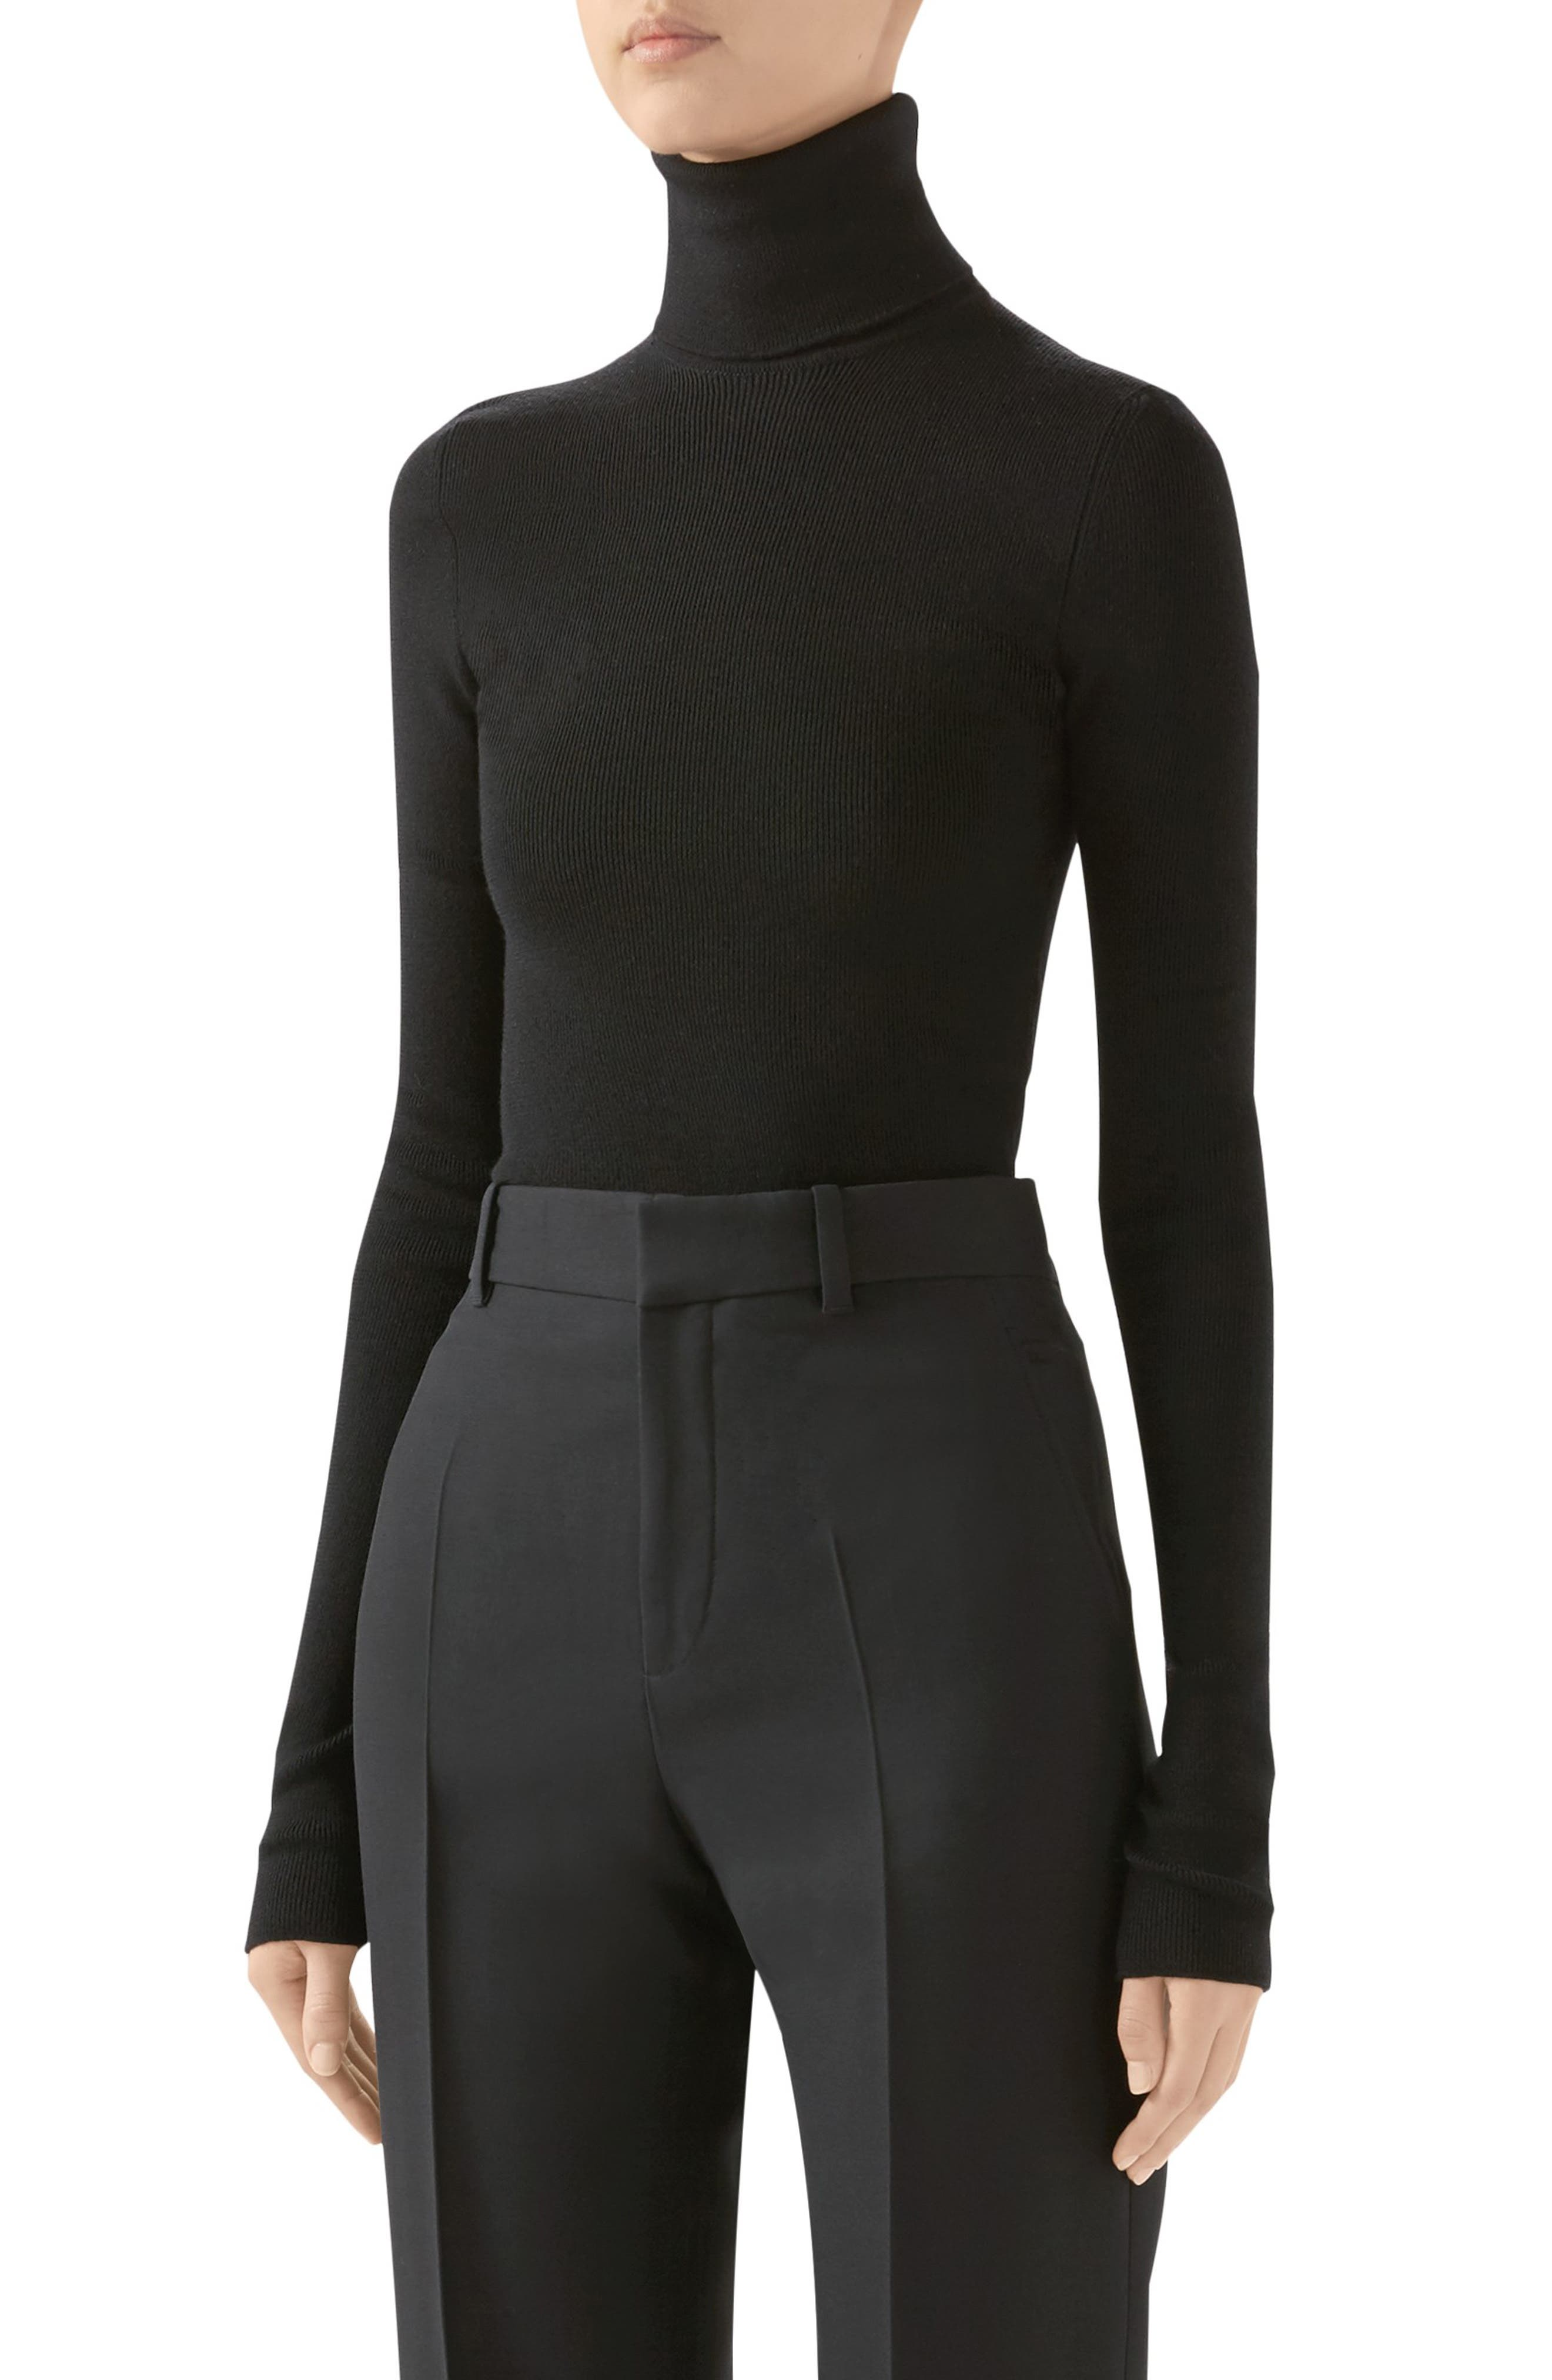 Gucci Tops Ribbed Wool Turtleneck Sweater